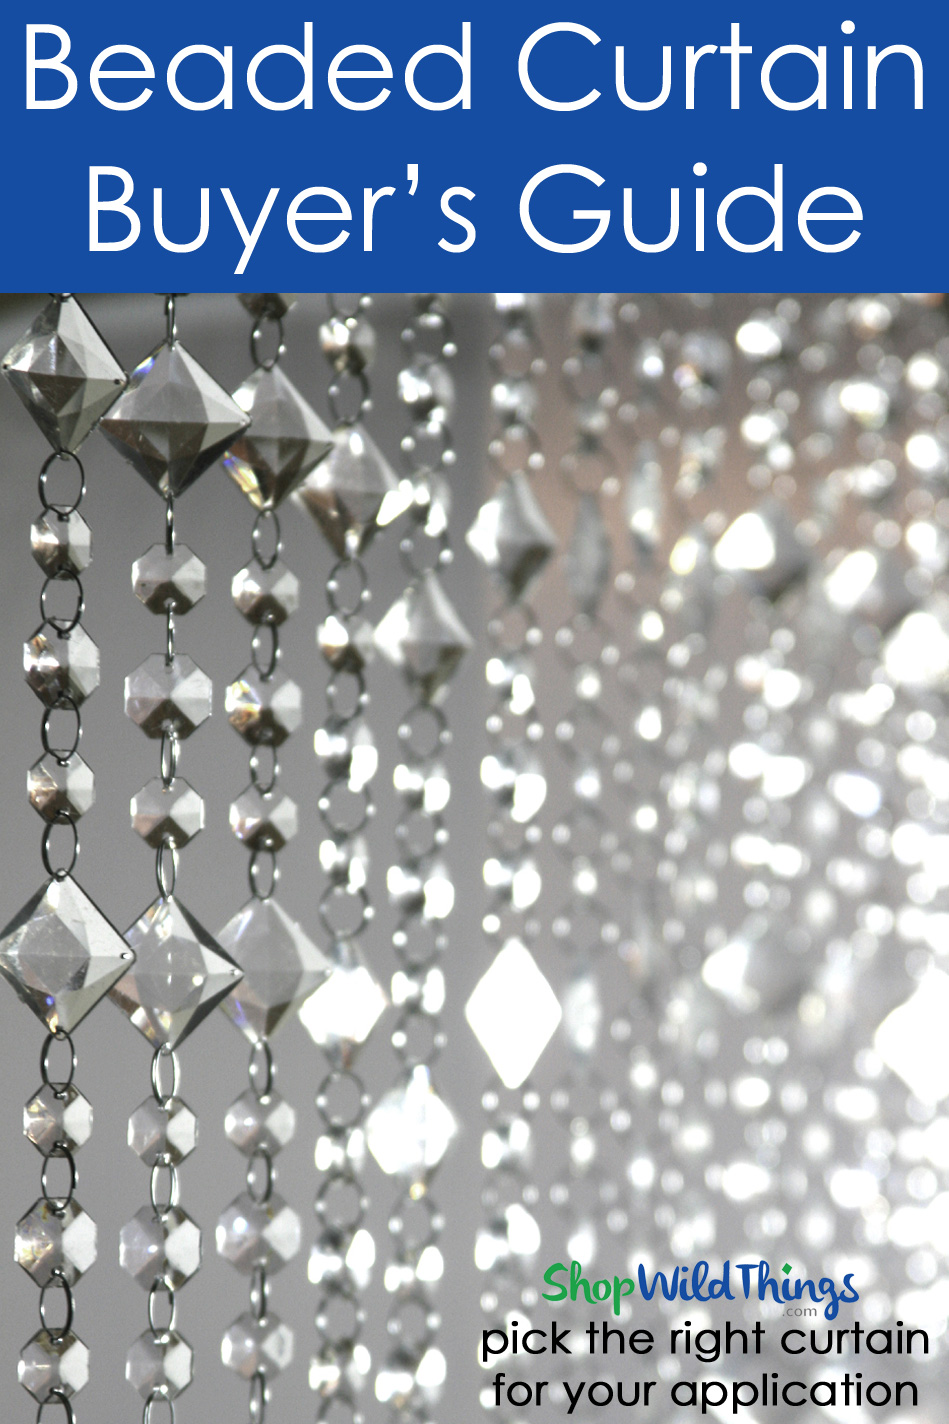 Beaded Curtain Buyer's Guide - How to Choose the Right Beads for Your Project